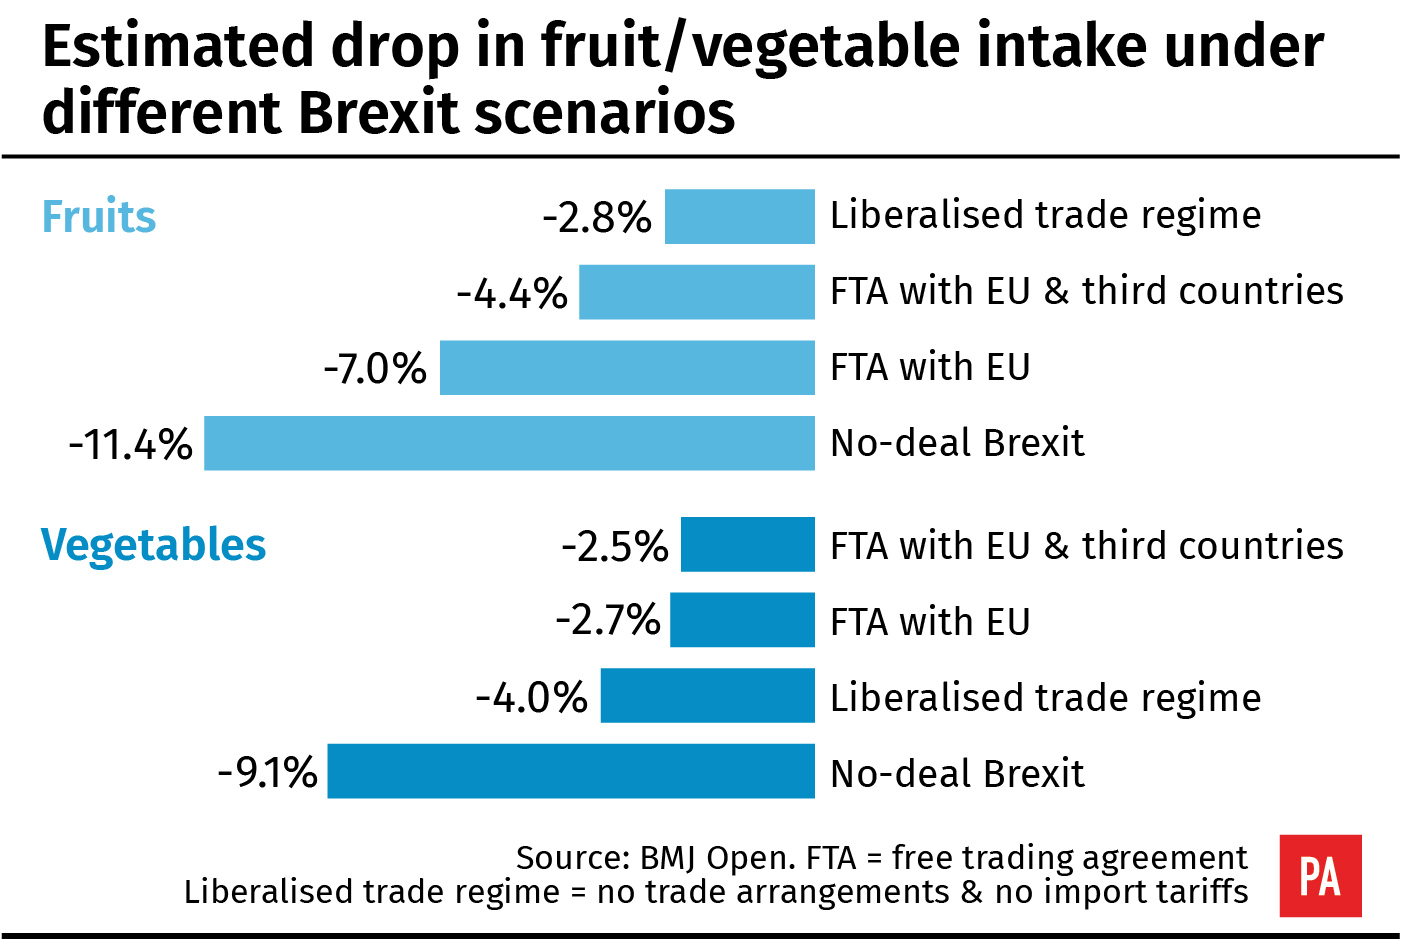 Estimated drop in fruit/veg intake